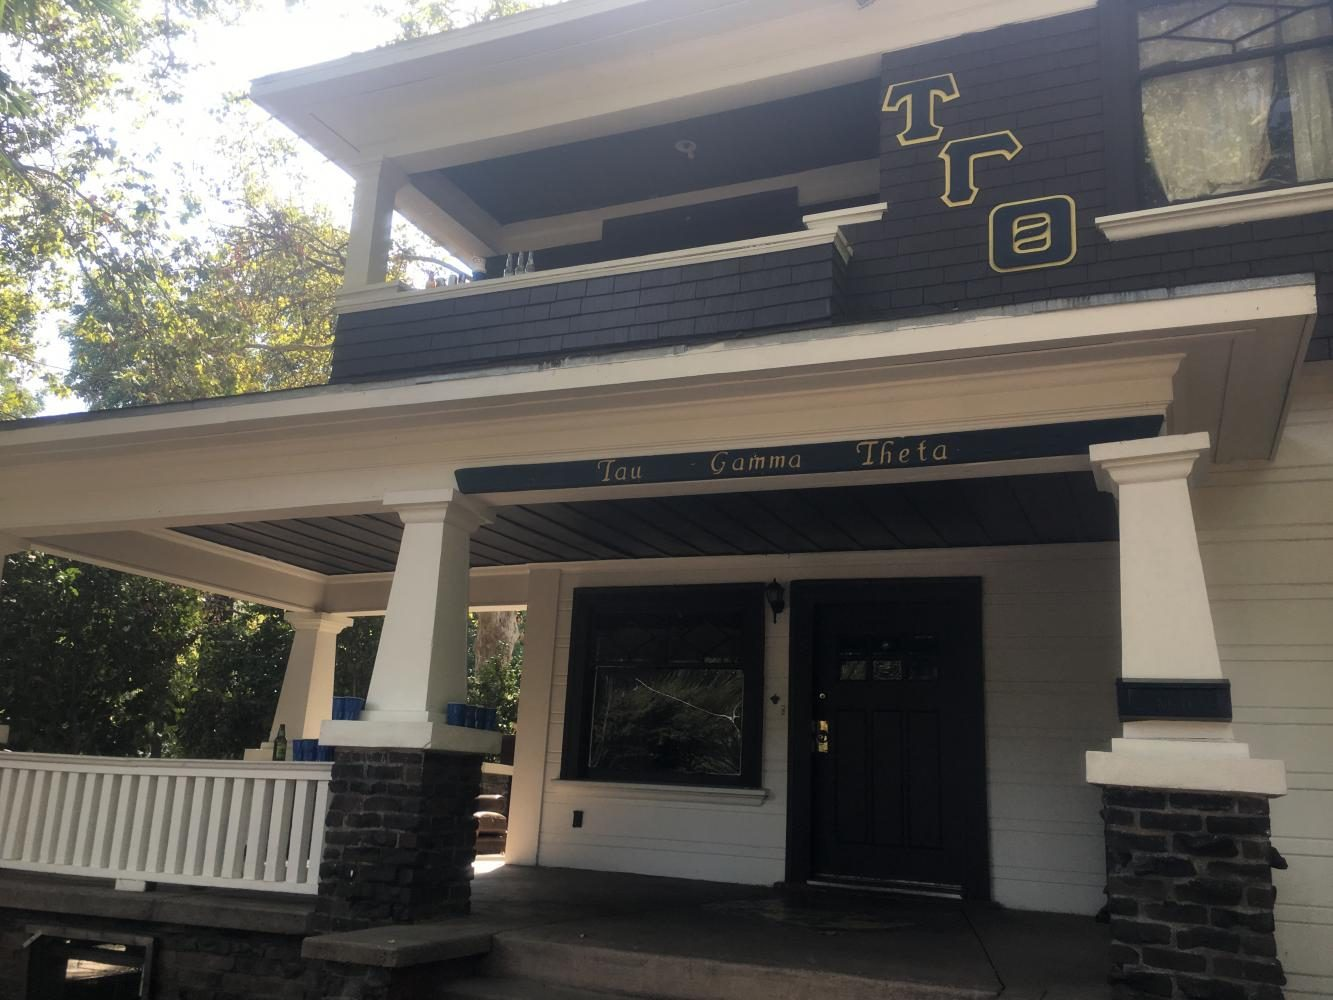 The+Tau+Gamma+fraternity+house%2C+where+a+shooting+took+place.+Photo+credit%3A+Natalie+Hanson